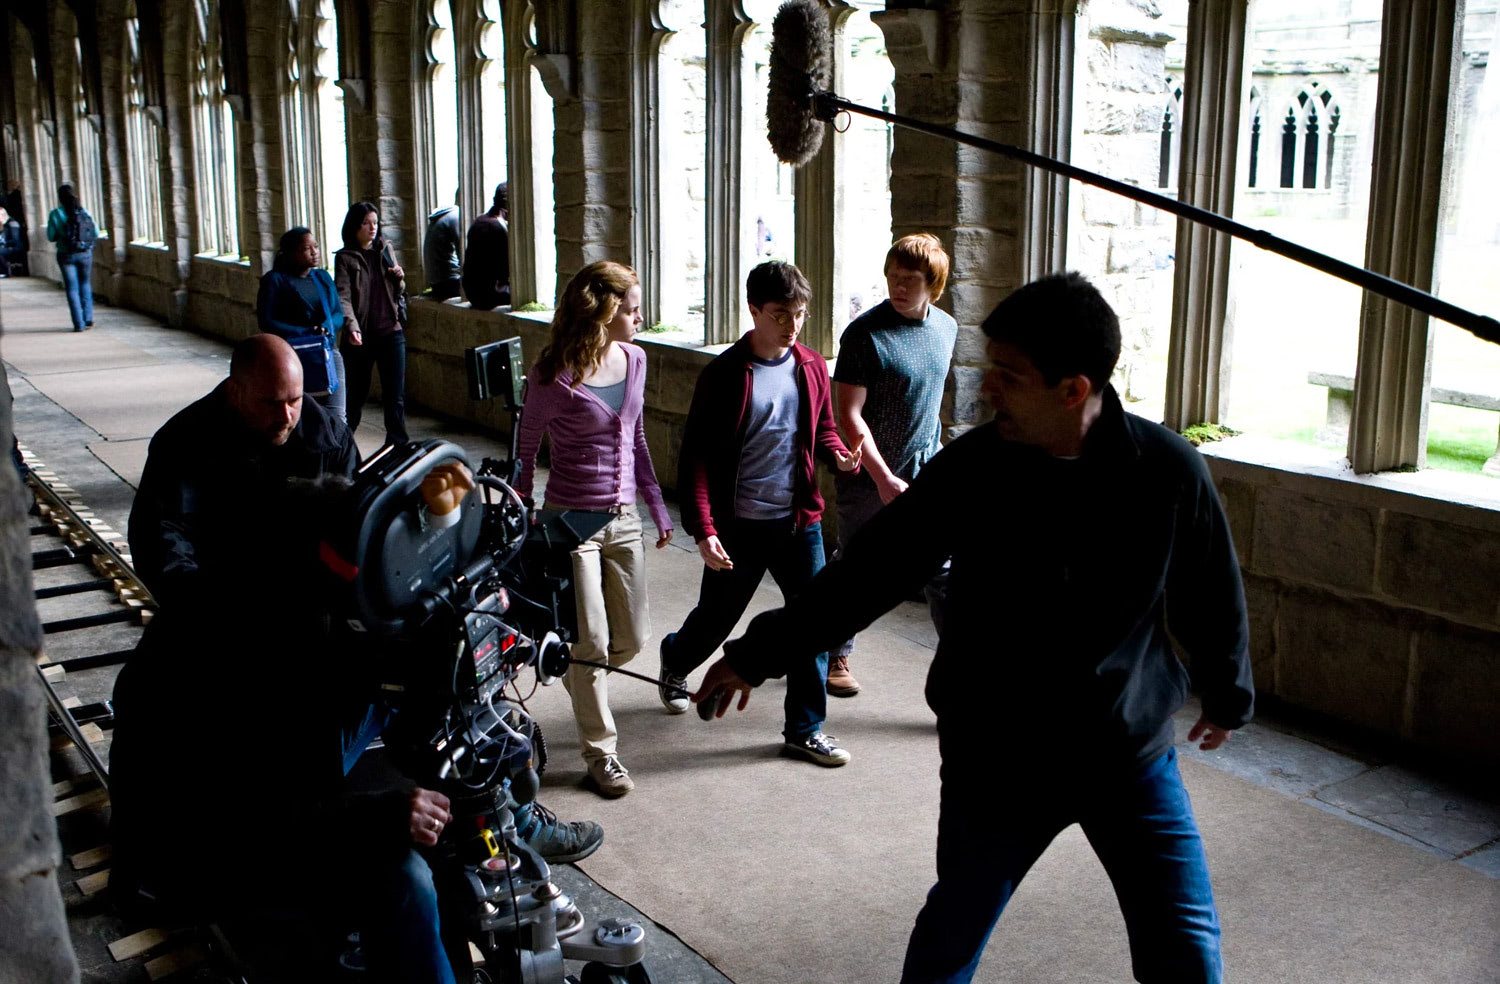 Emma, Dan and Rupert filming in a corridor